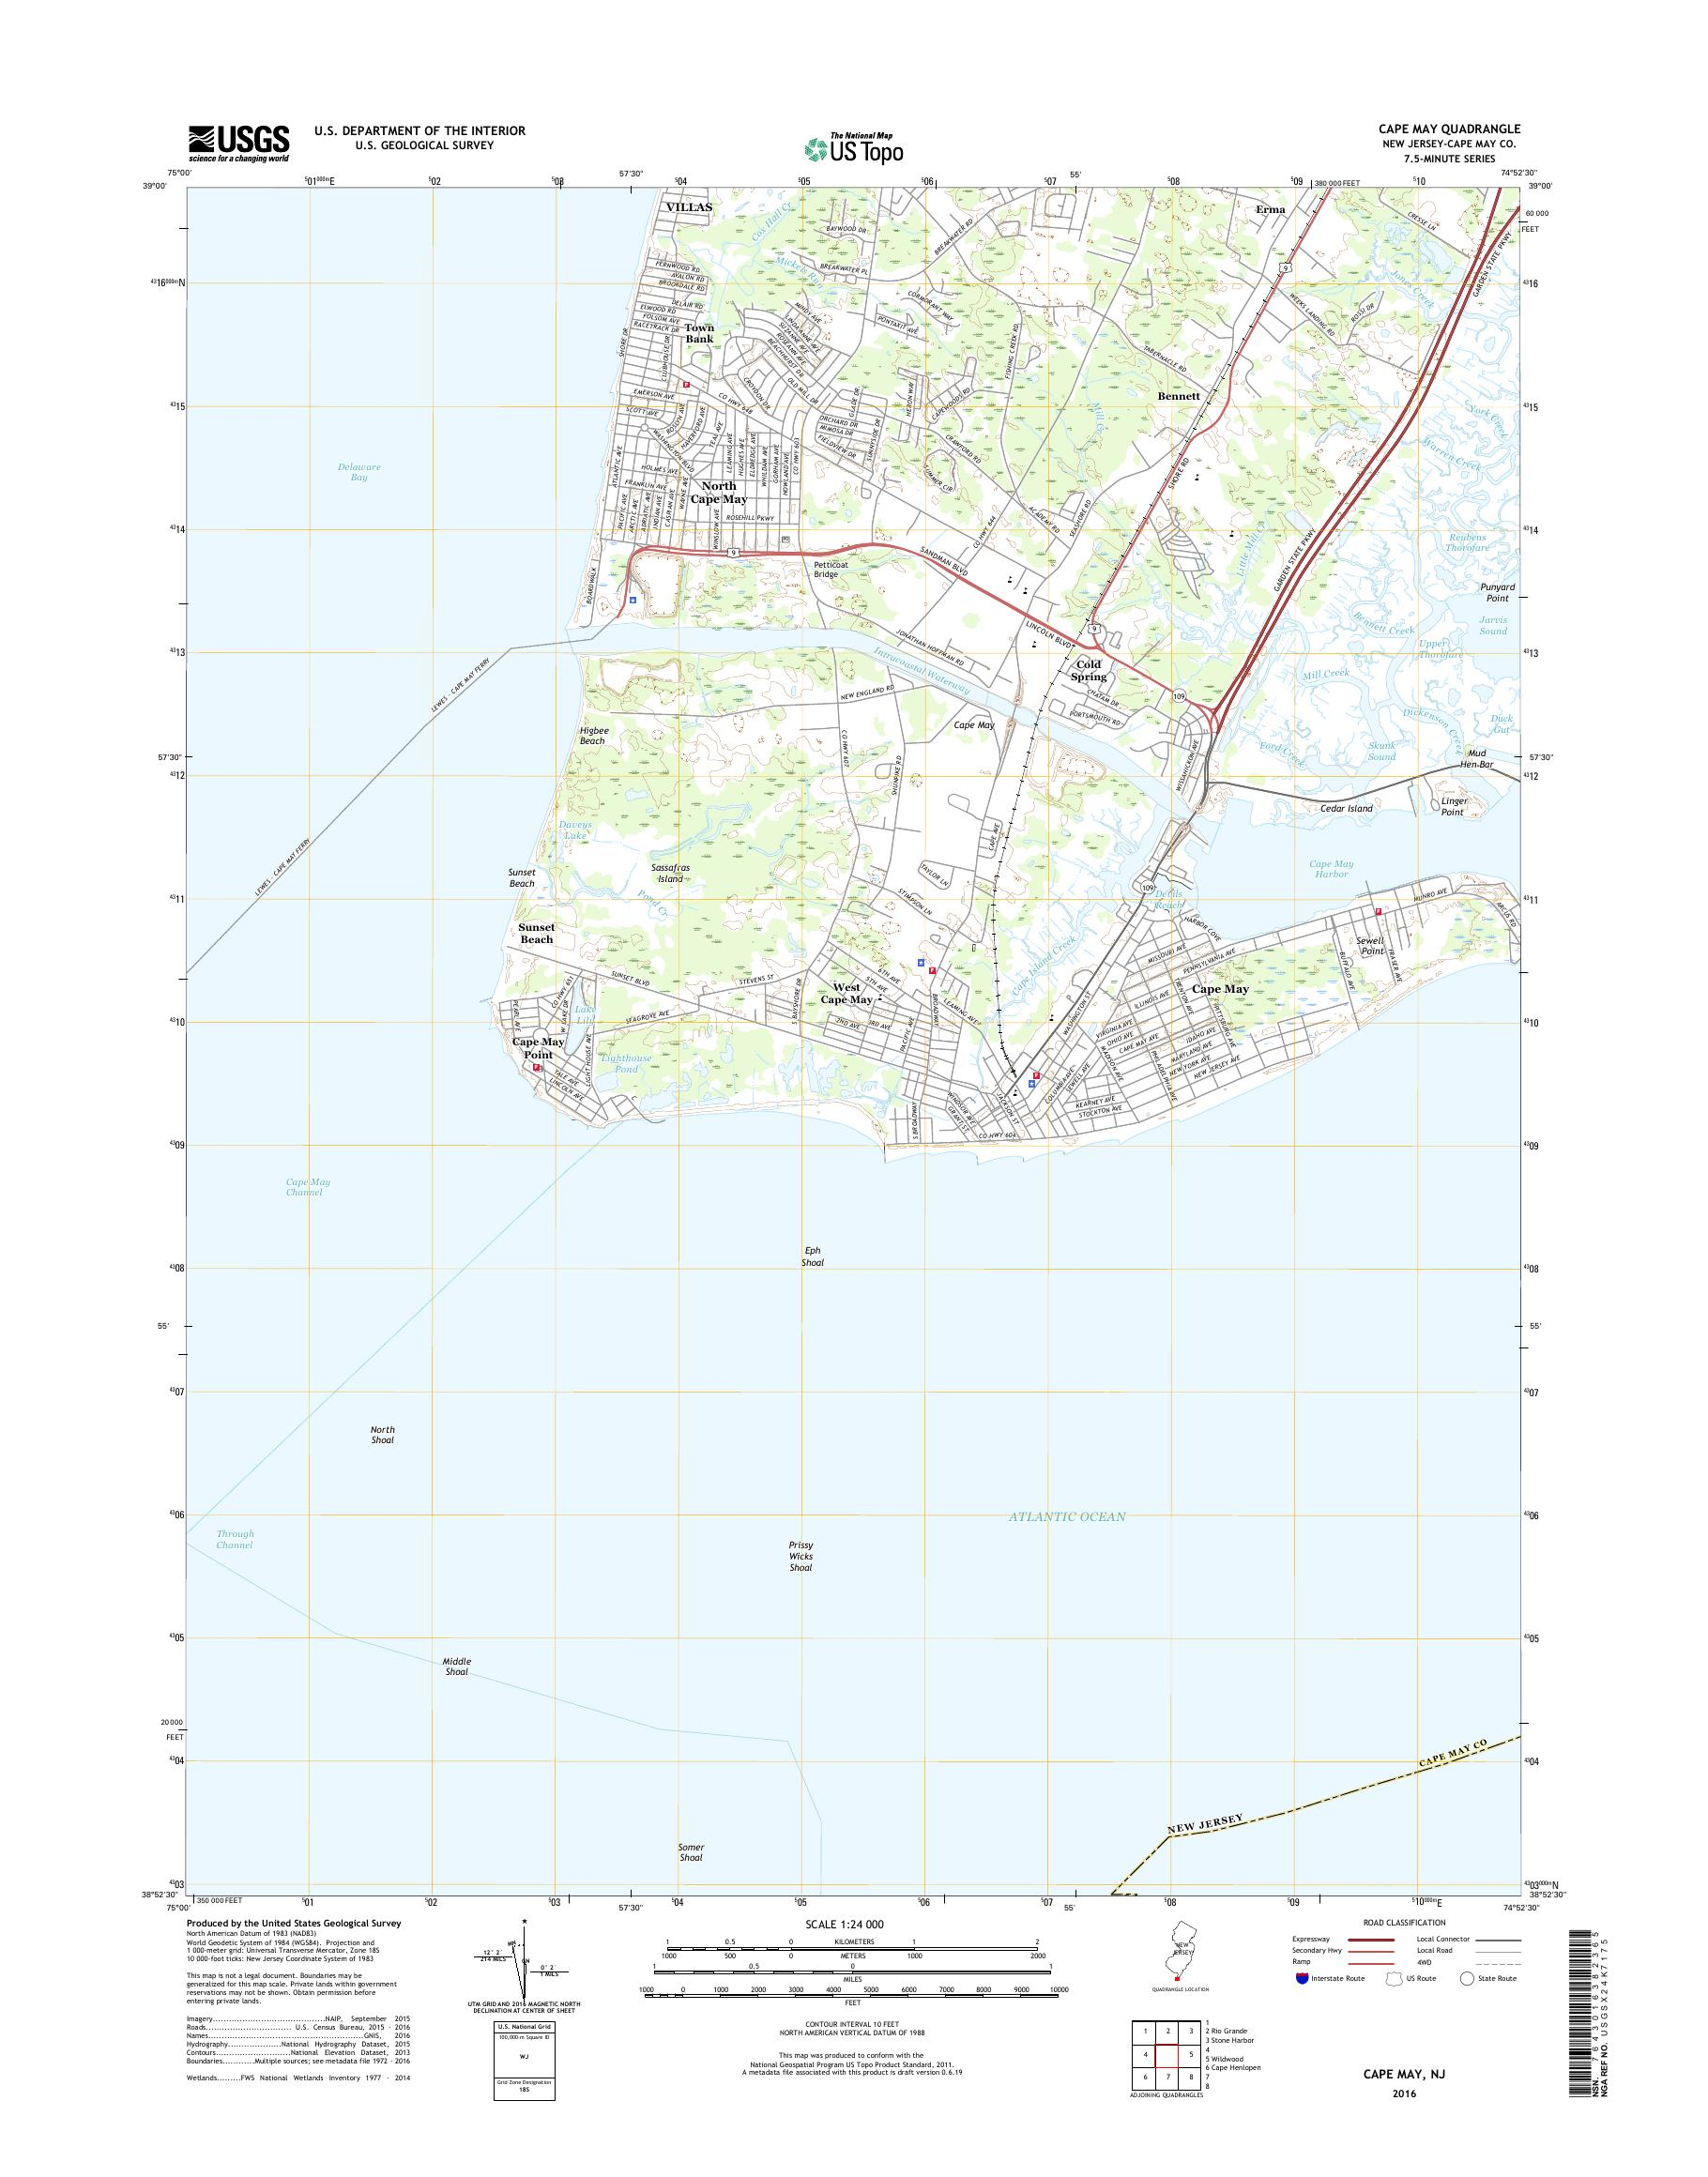 MyTopo Cape May, New Jersey USGS Quad Topo Map on